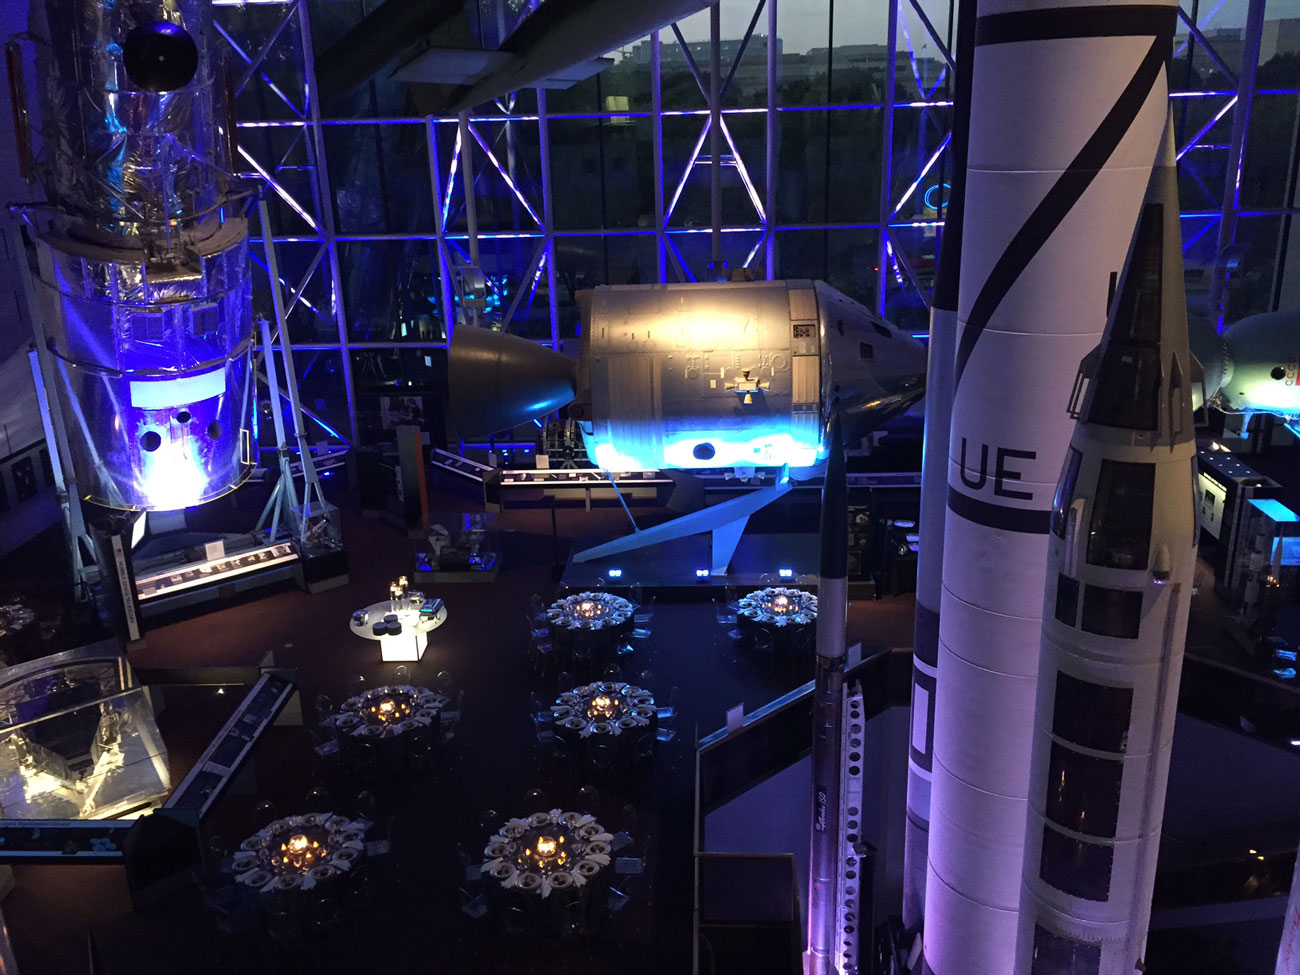 Attendees at TraceLink's NEXUS '15 enjoyed a night of food and dancing at The Smithsonian National Air and Space Museum in Washington D.C.